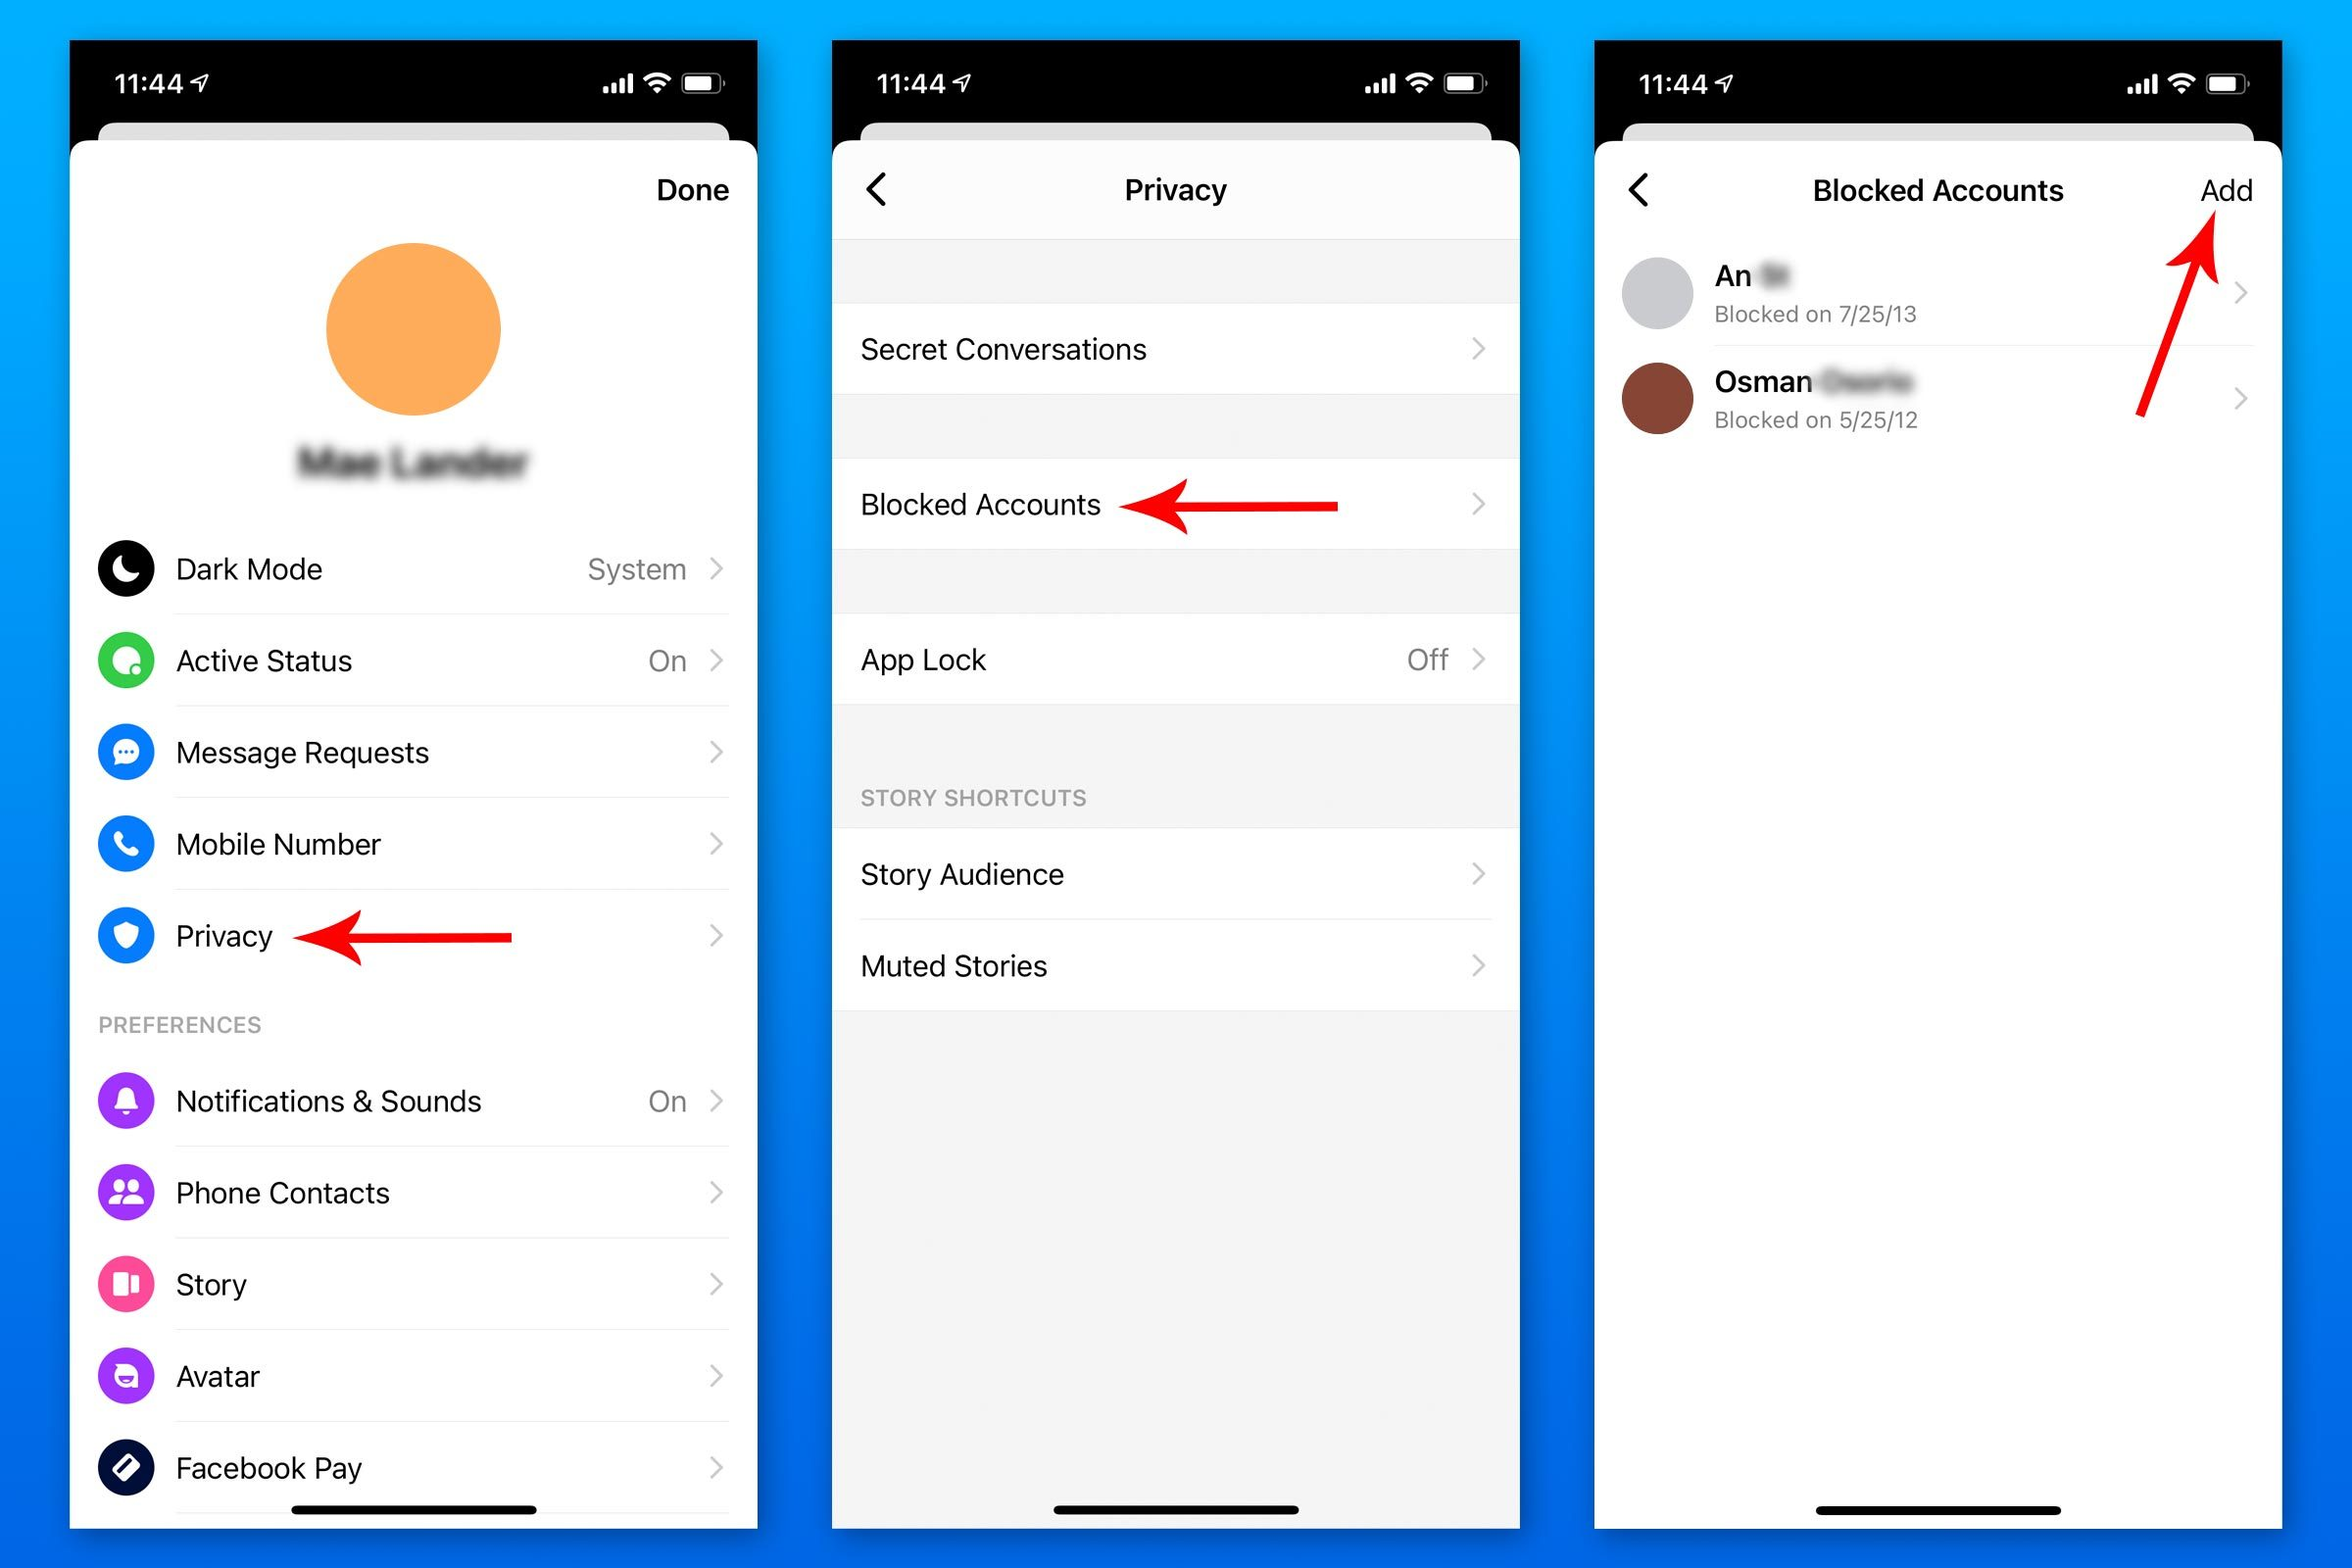 How to block someone on the Facebook Messenger mobile app by adding someone to the blocked users list